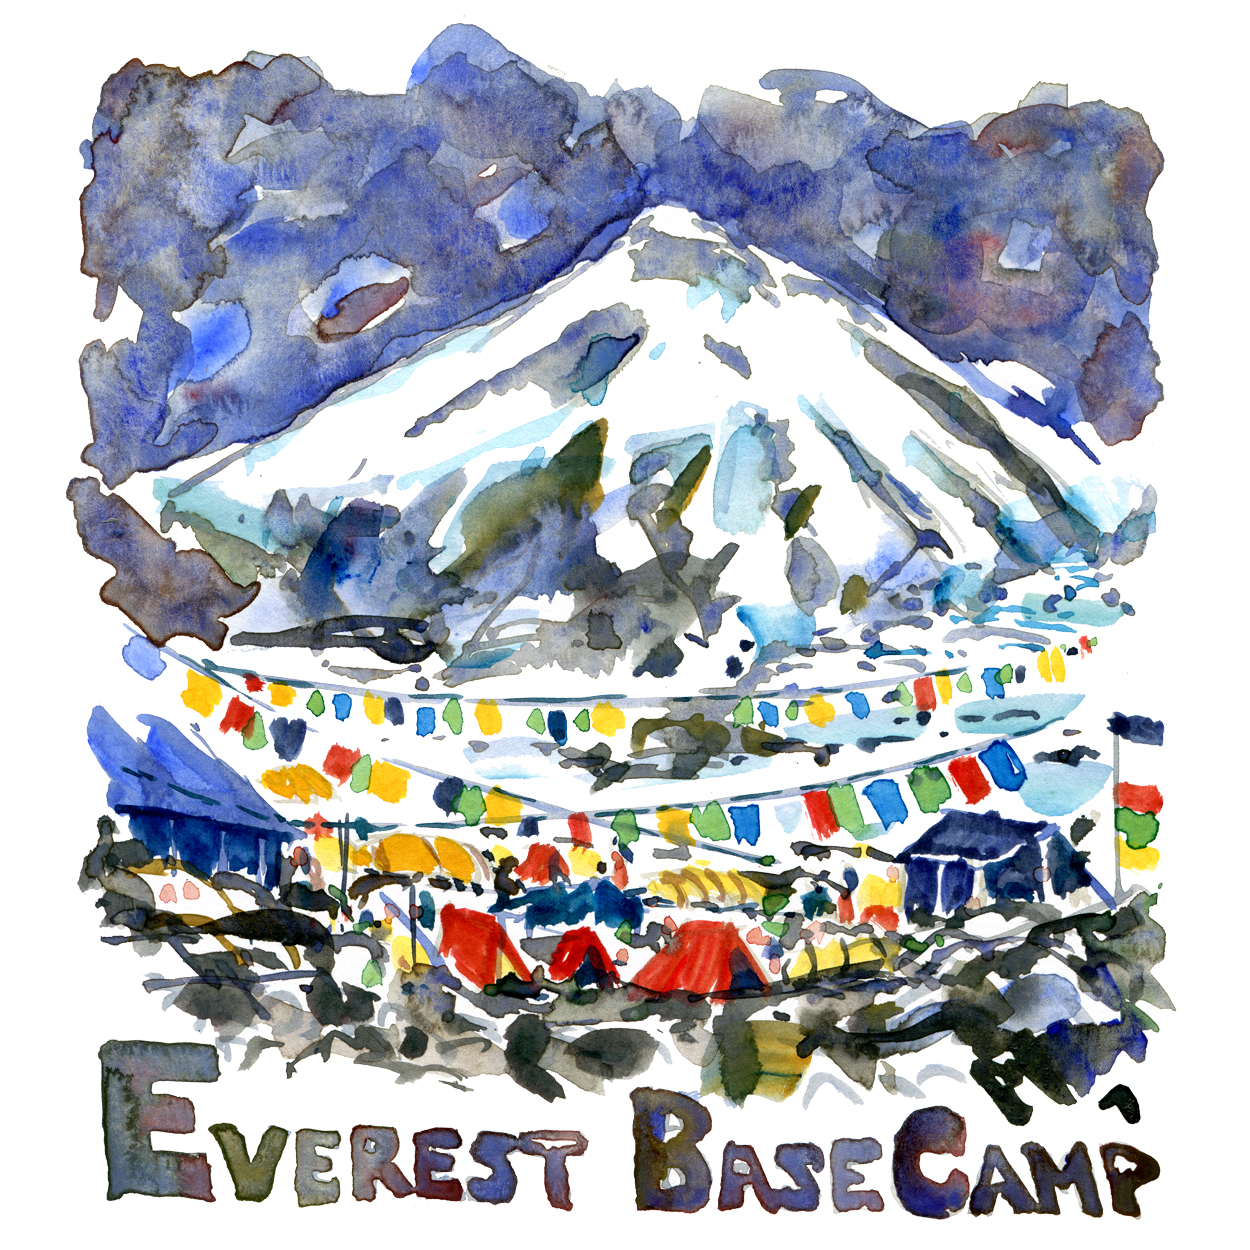 Mount Everest Basecamp Watercolor illustration by Frits Ahlefeldt